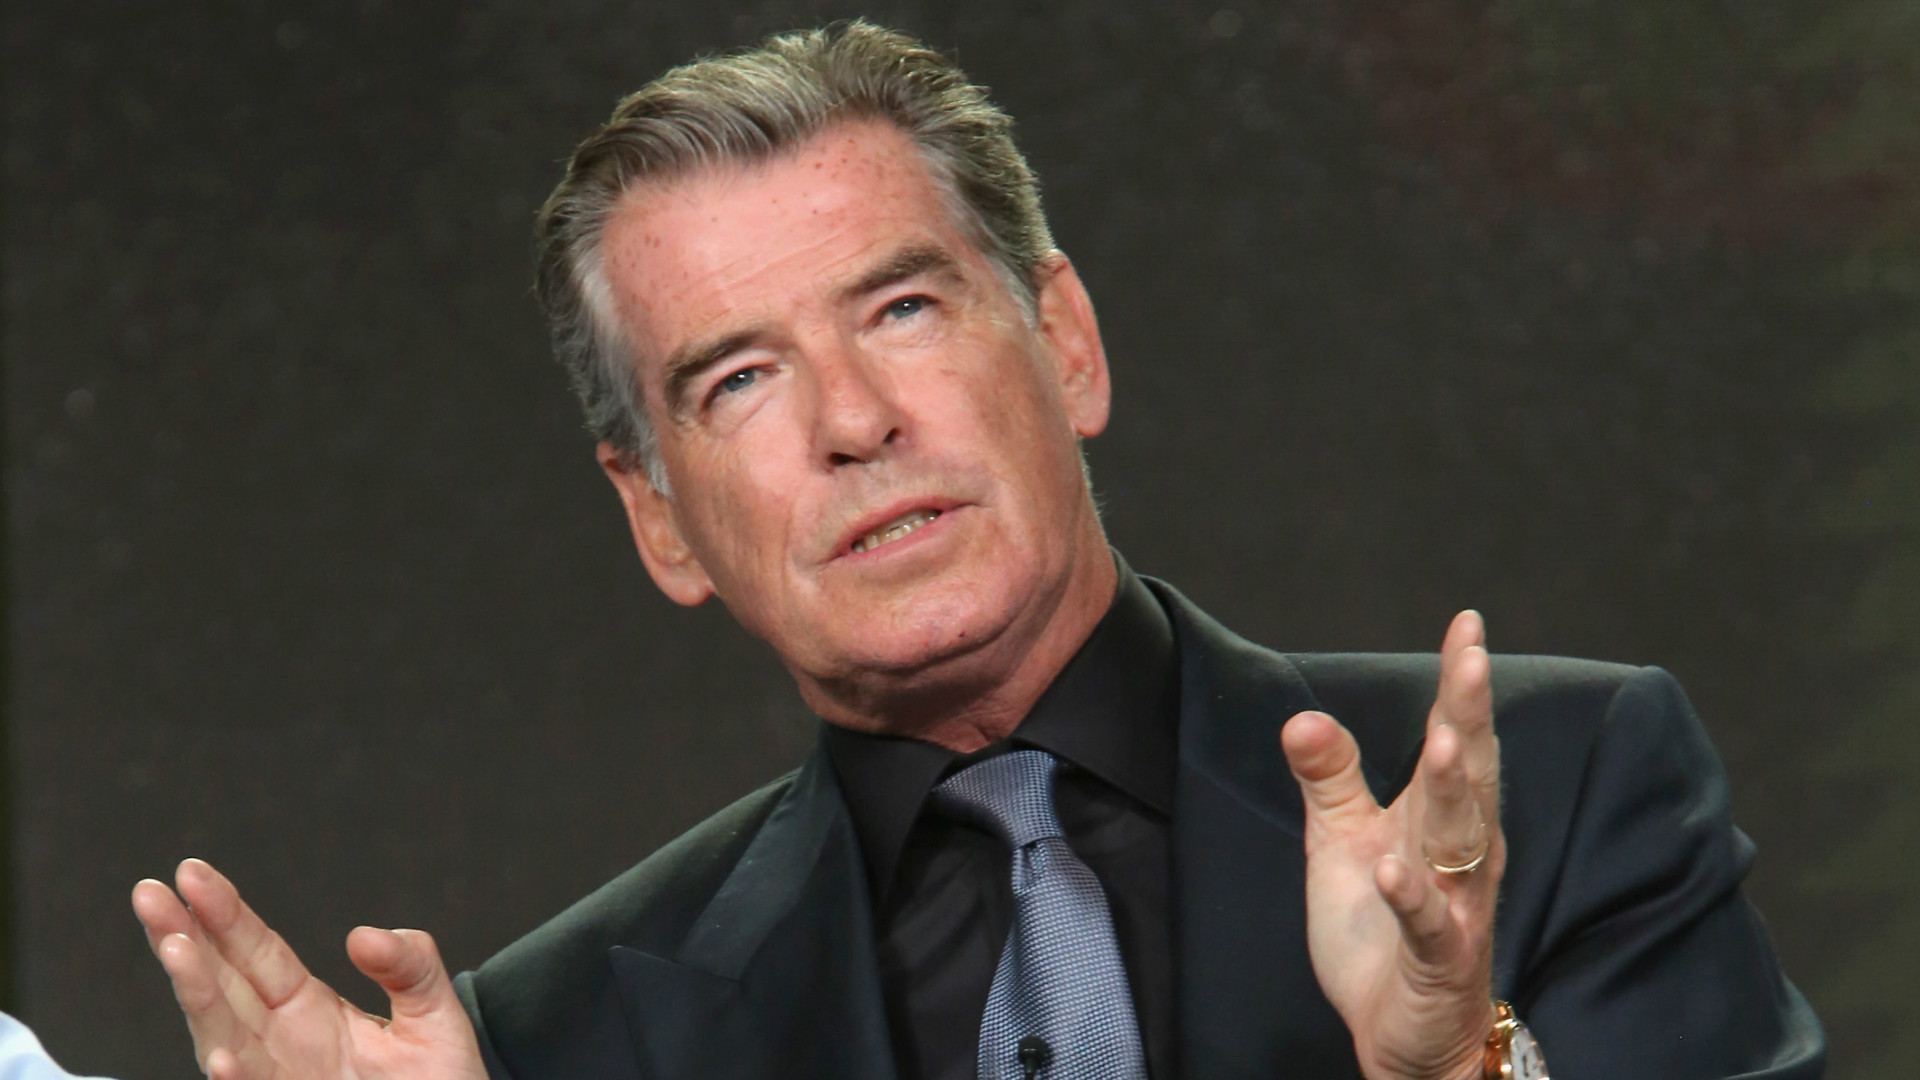 James Bond icon Pierce Brosnan.